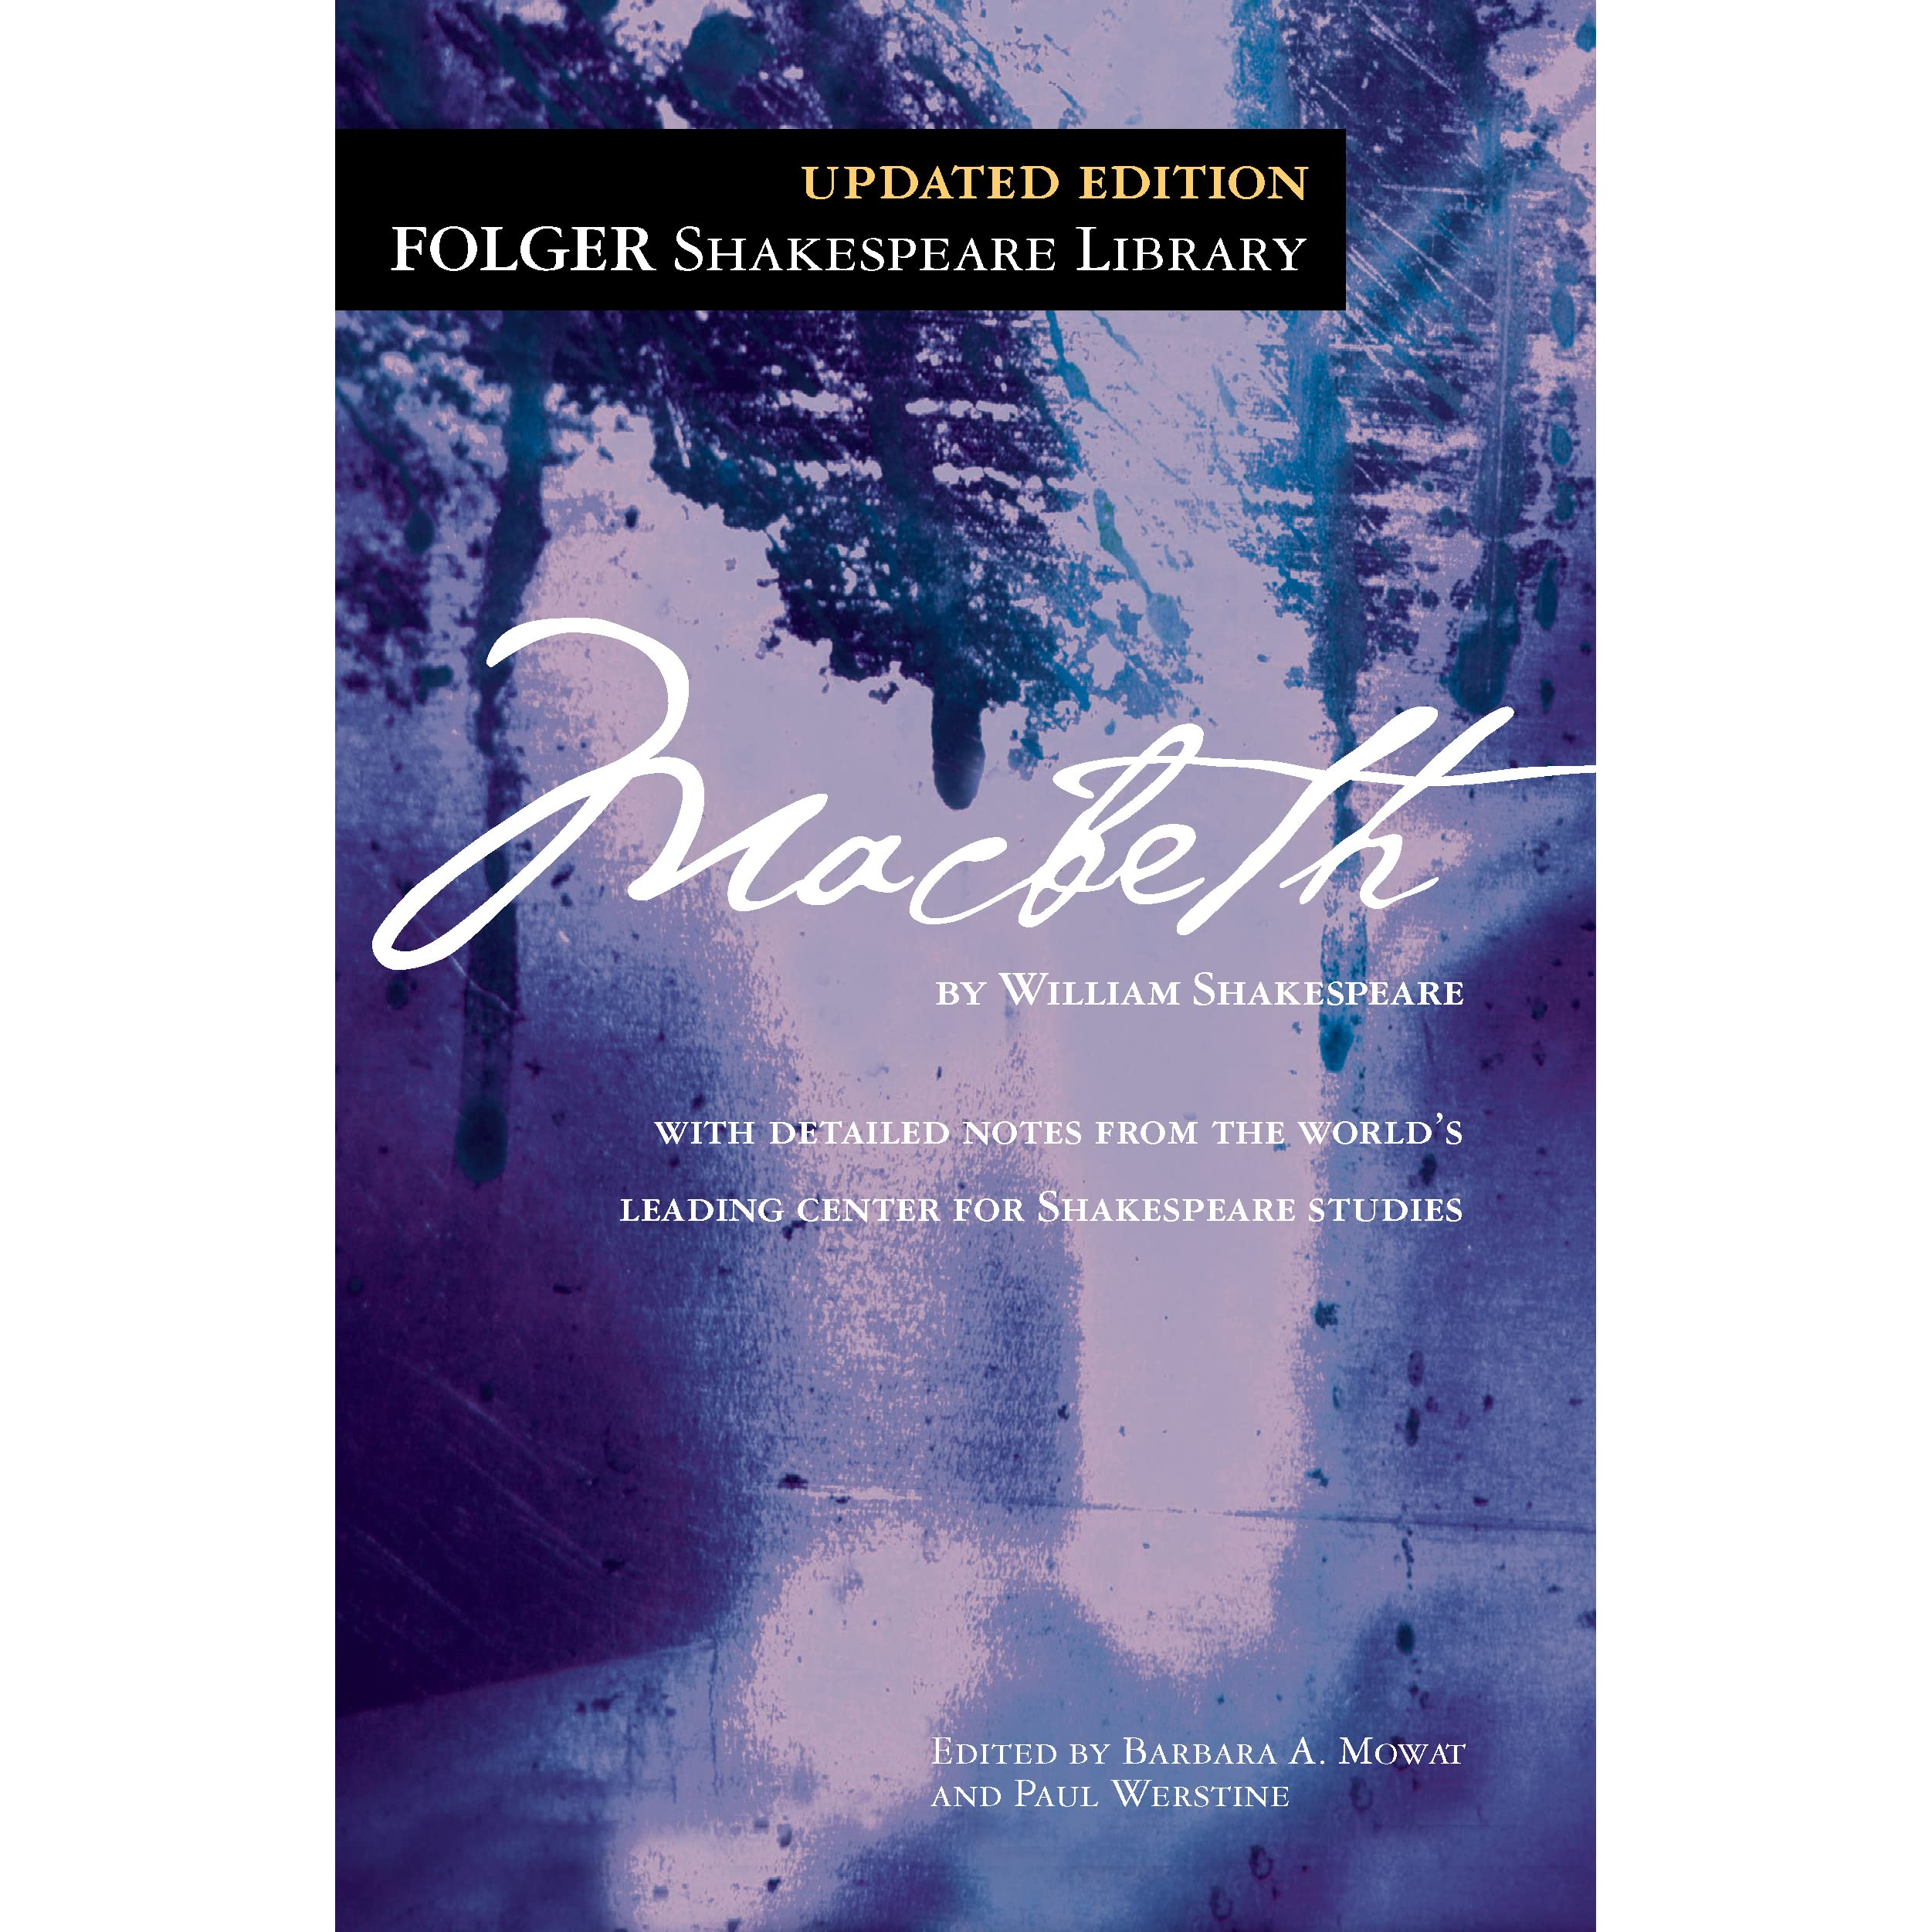 Macbeth essay help book reviews